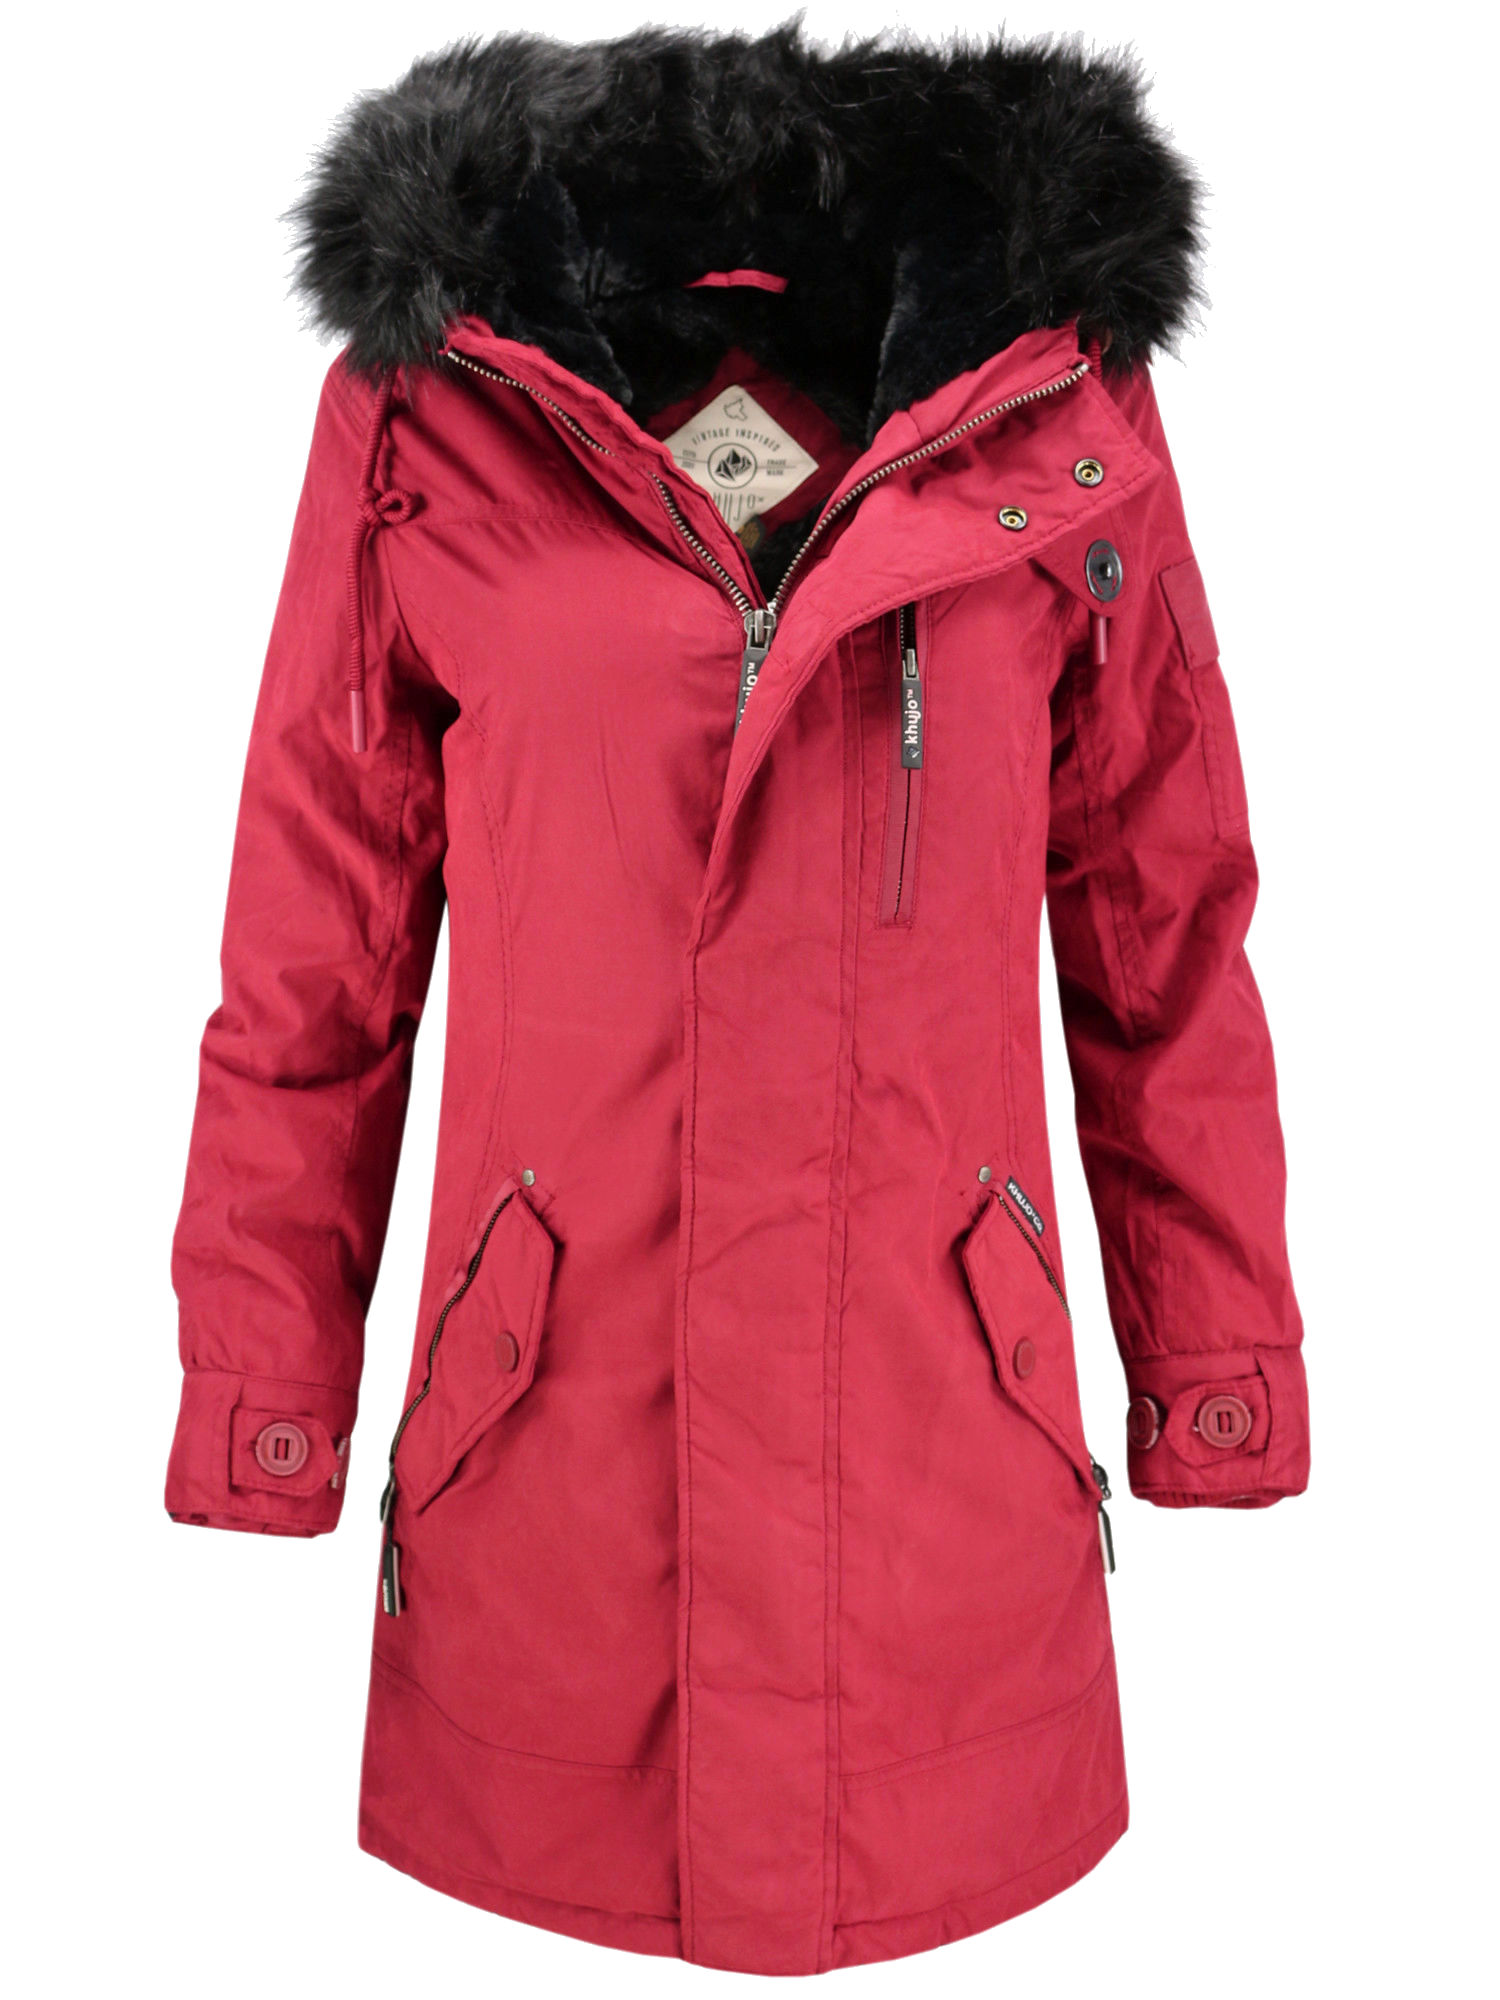 cheap for discount 0aa98 2734d KHUJO Damen Wintermantel Mantel Jacke BABETTE Winter Parka rot Kapuze Fell